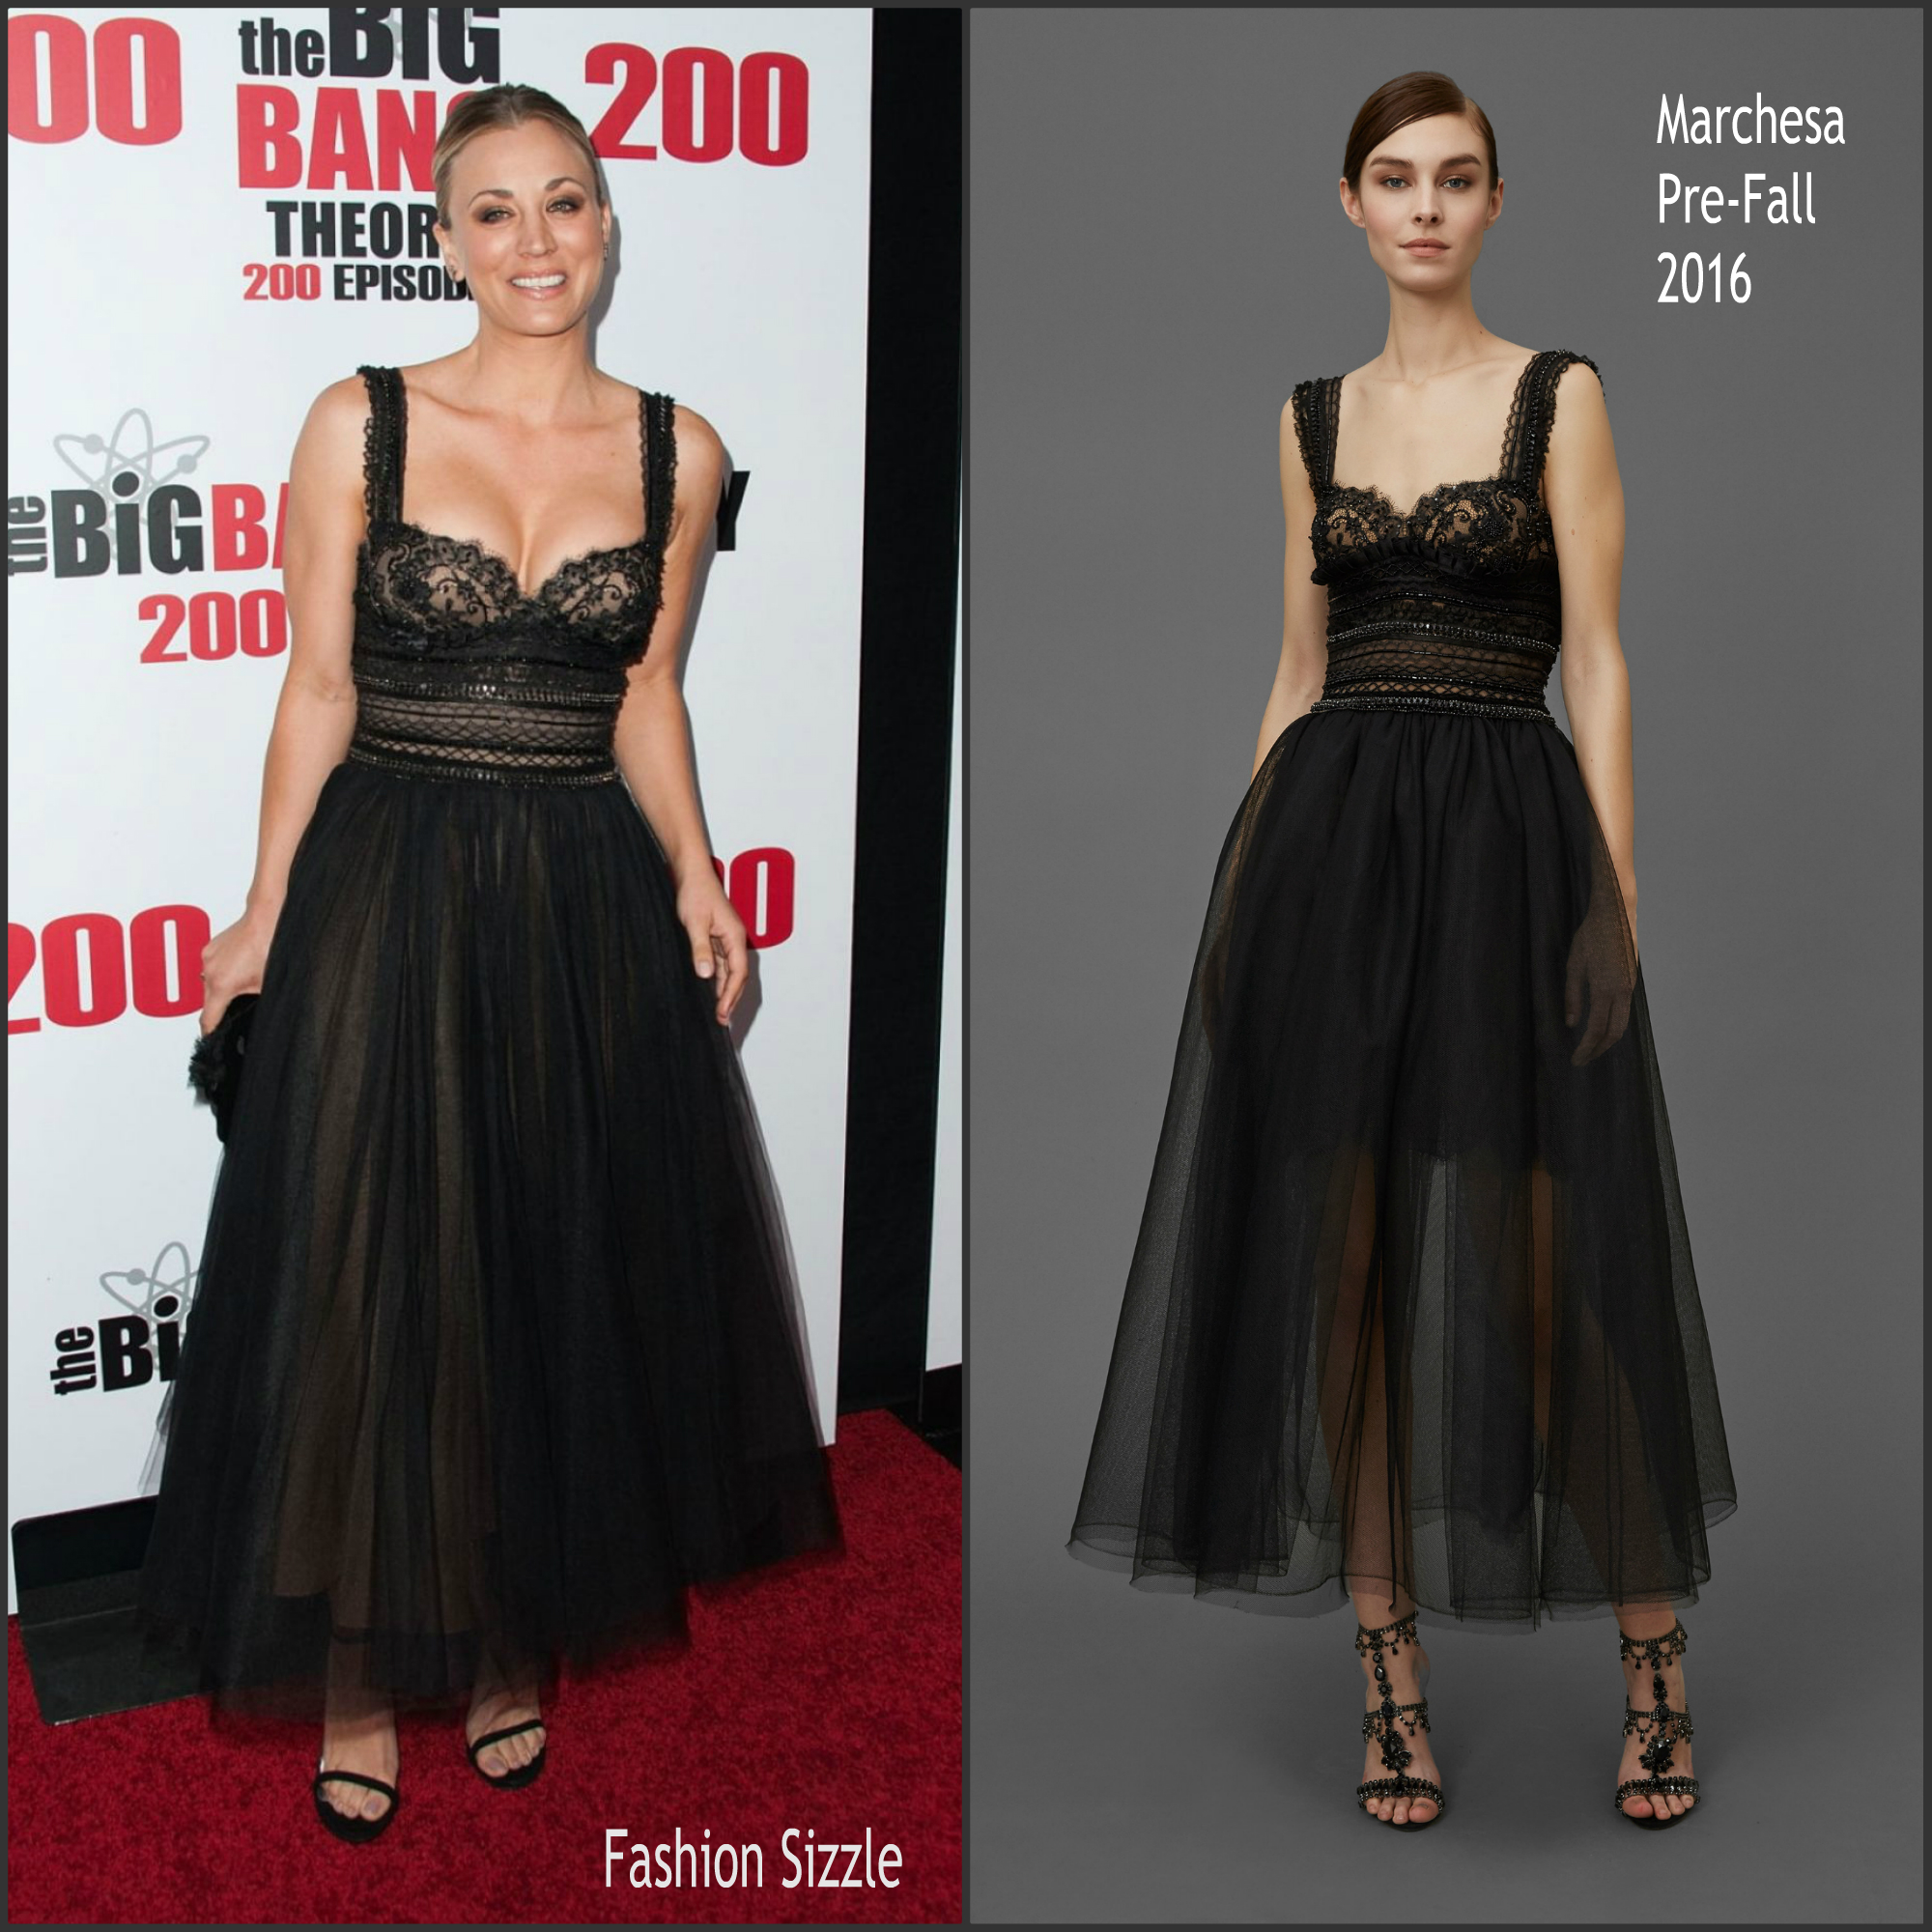 kaley-cuoco-in-marchesa-at-the-big-bang-theory-200th-episode-party